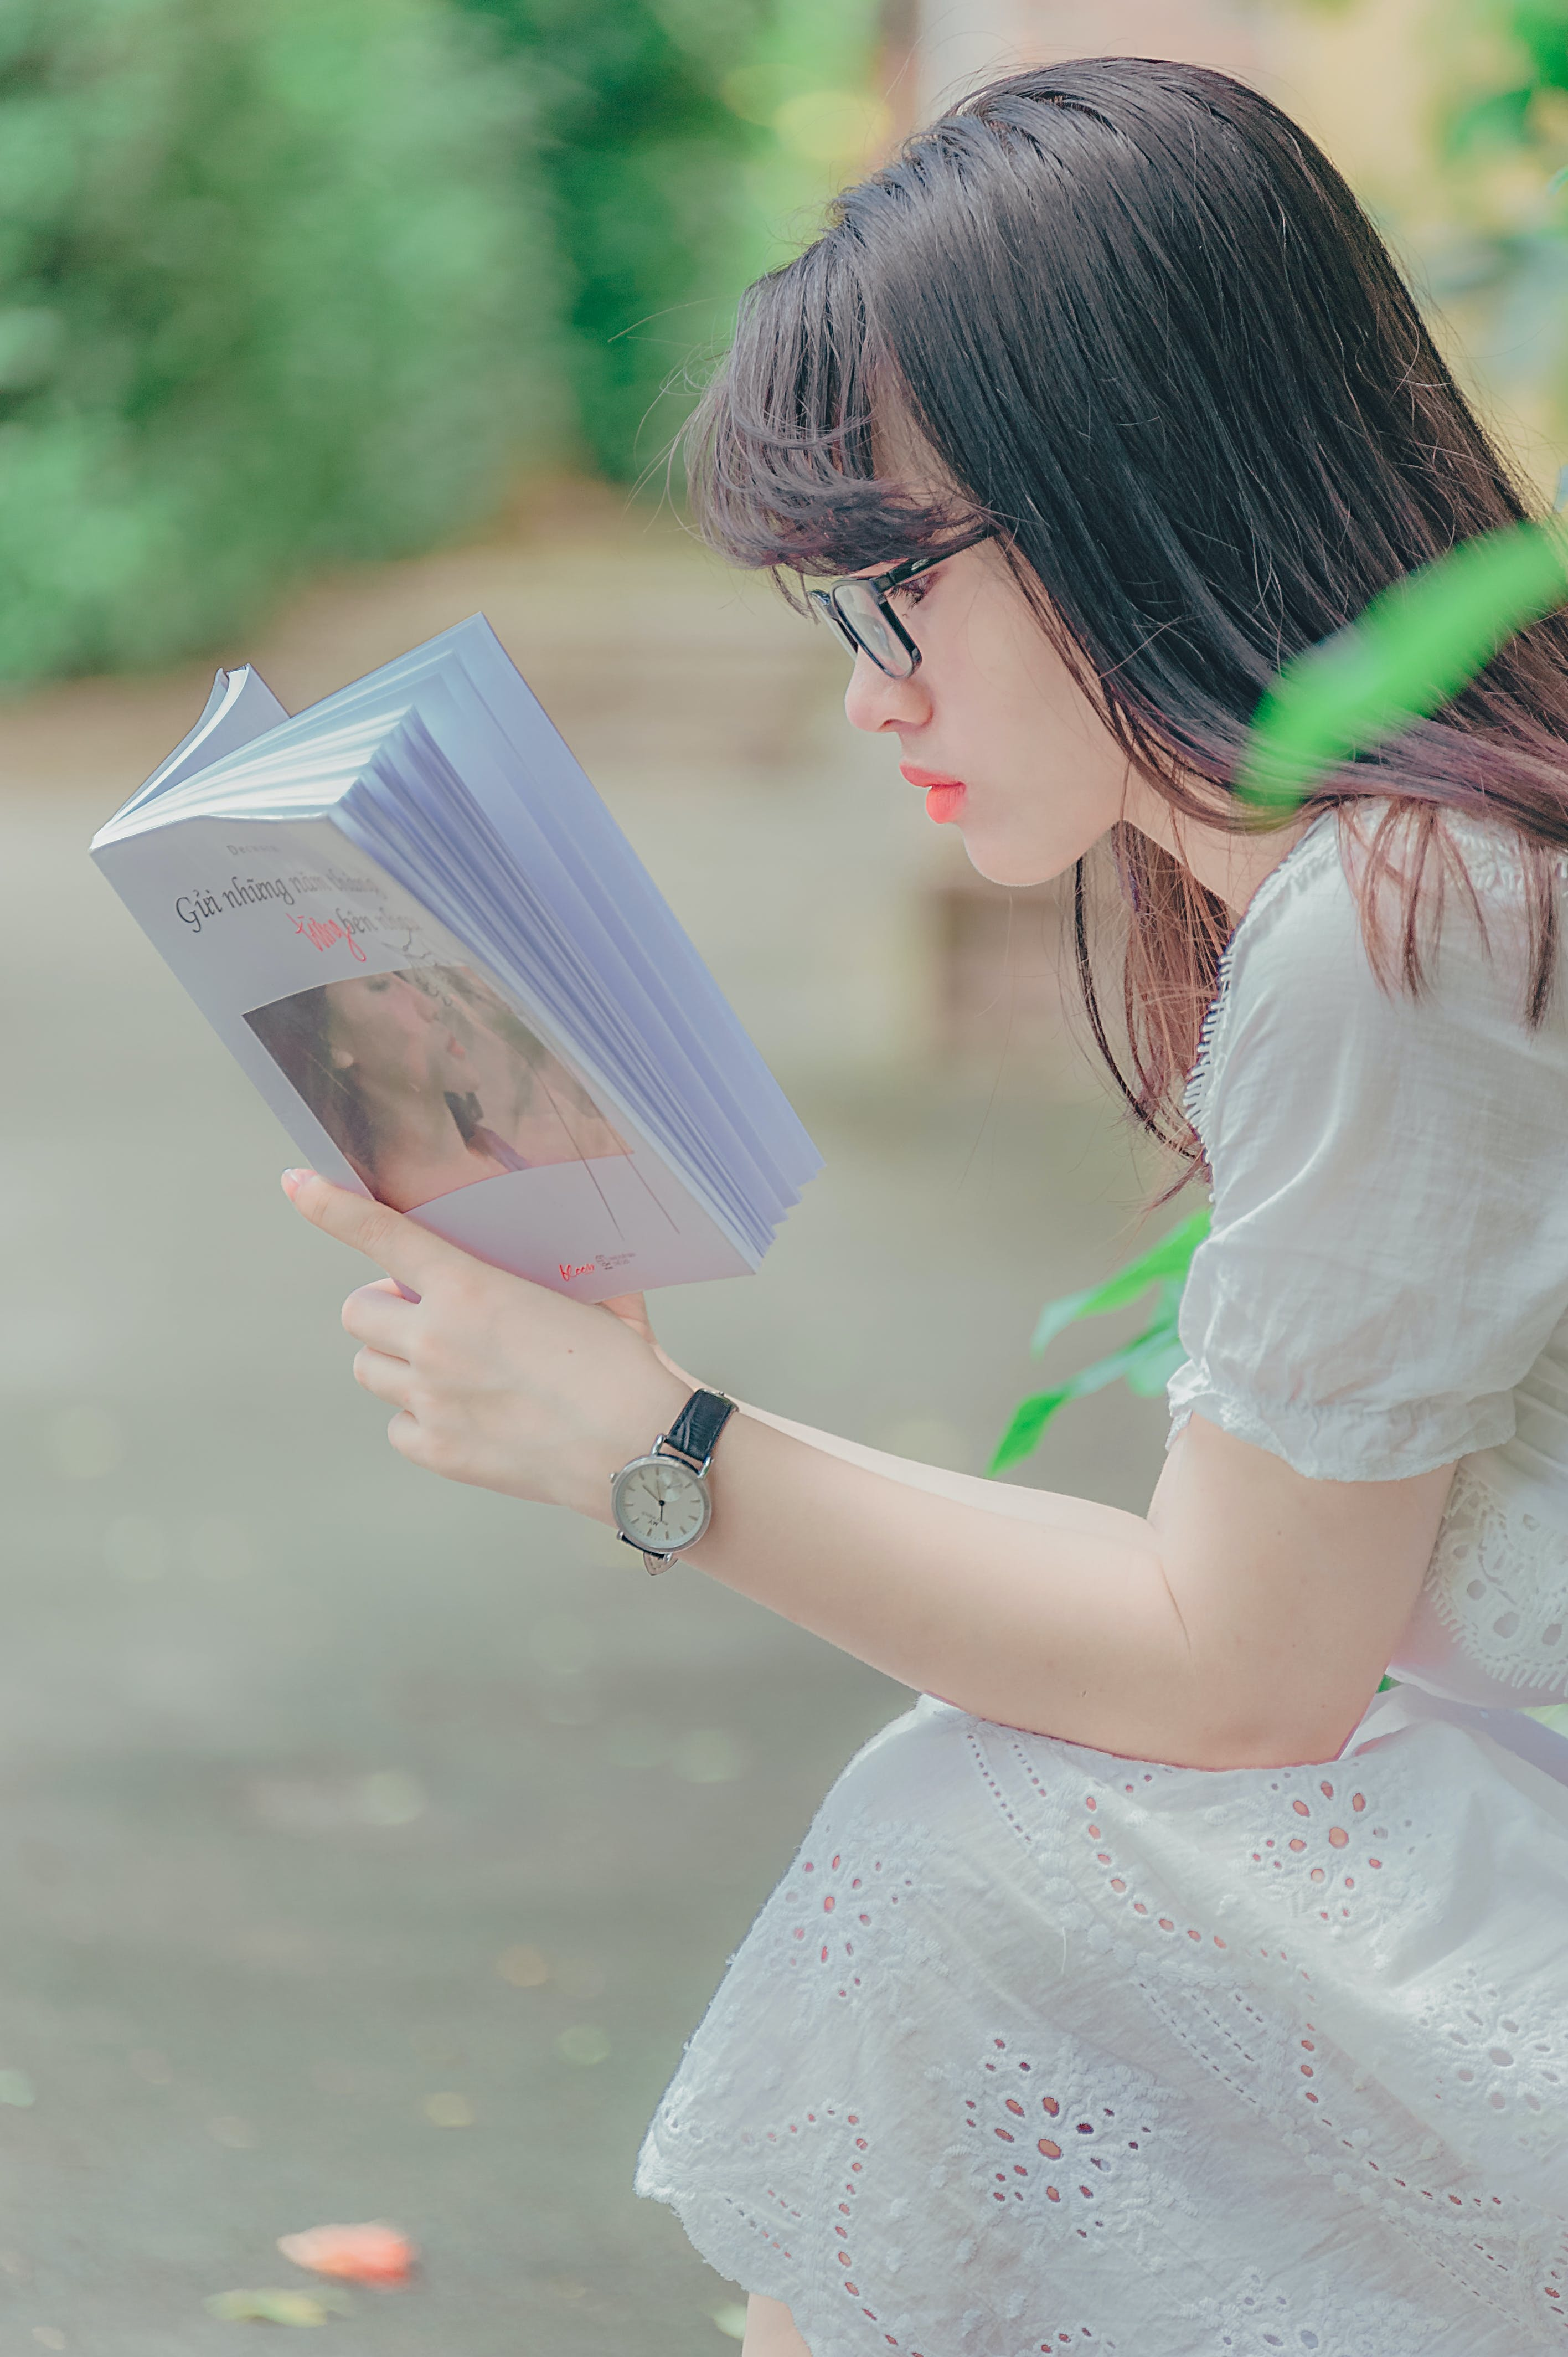 Woman Sitting While Reading Book Outdoors